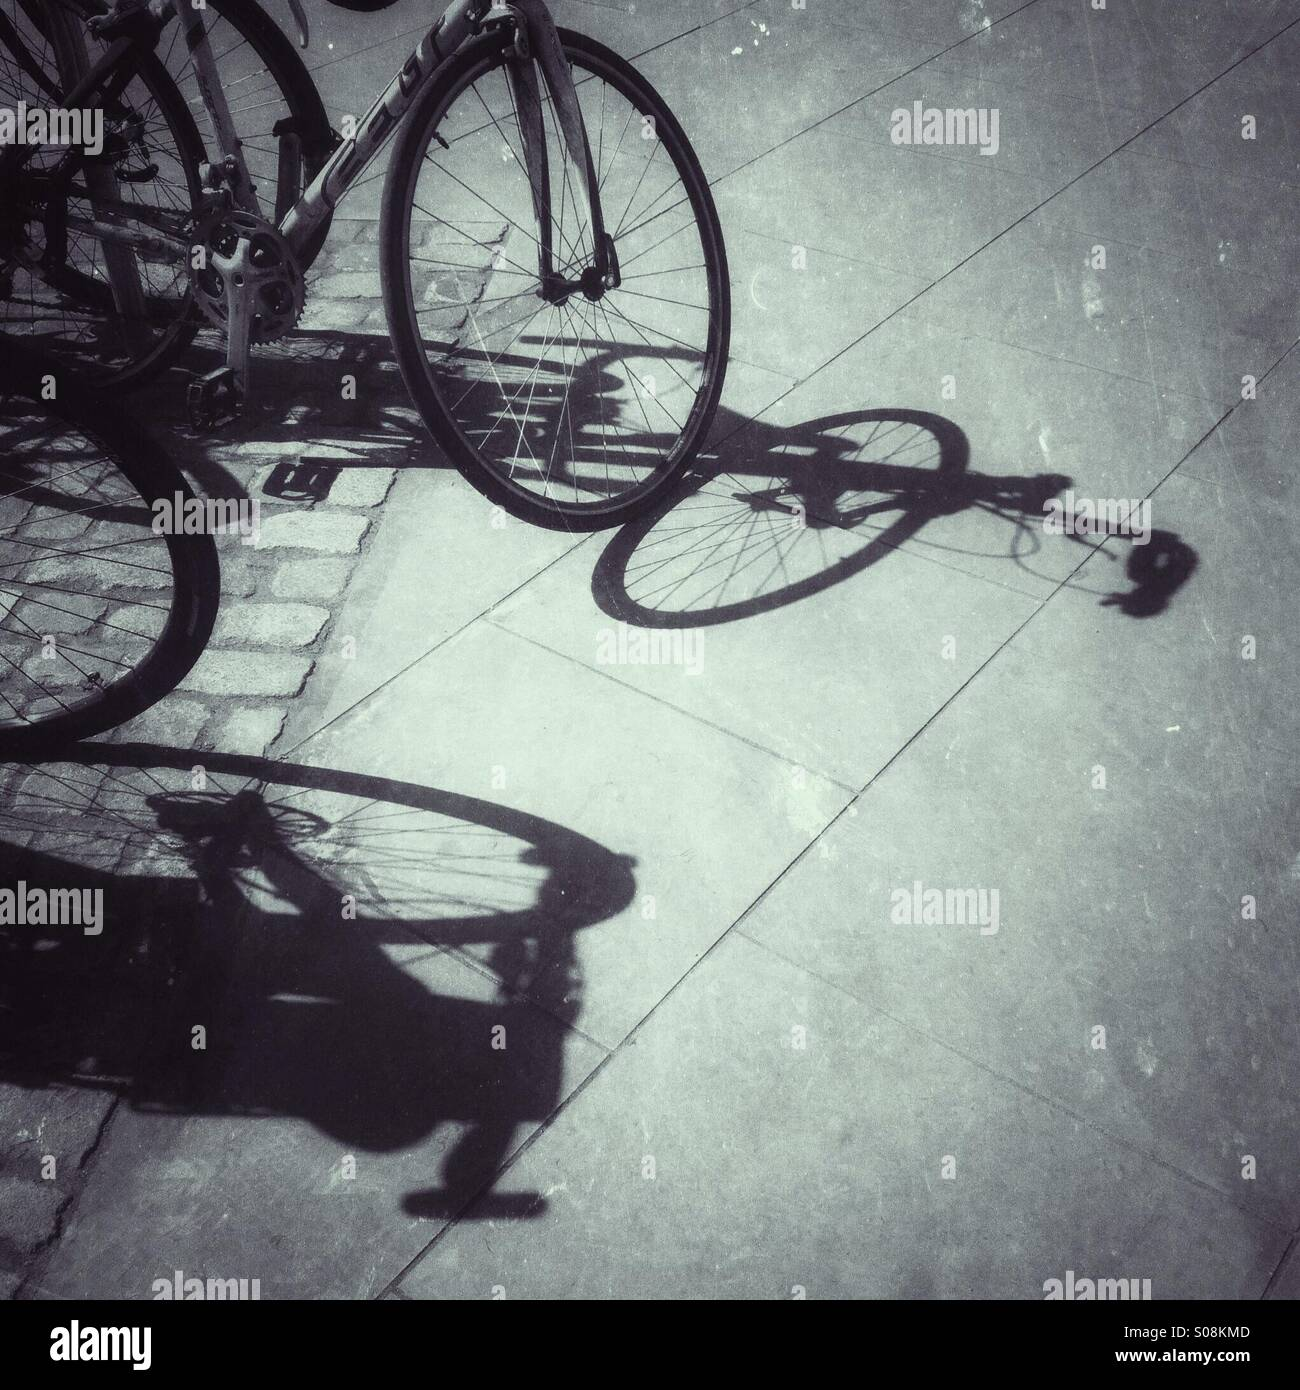 Bicycle silhouettes - Stock Image